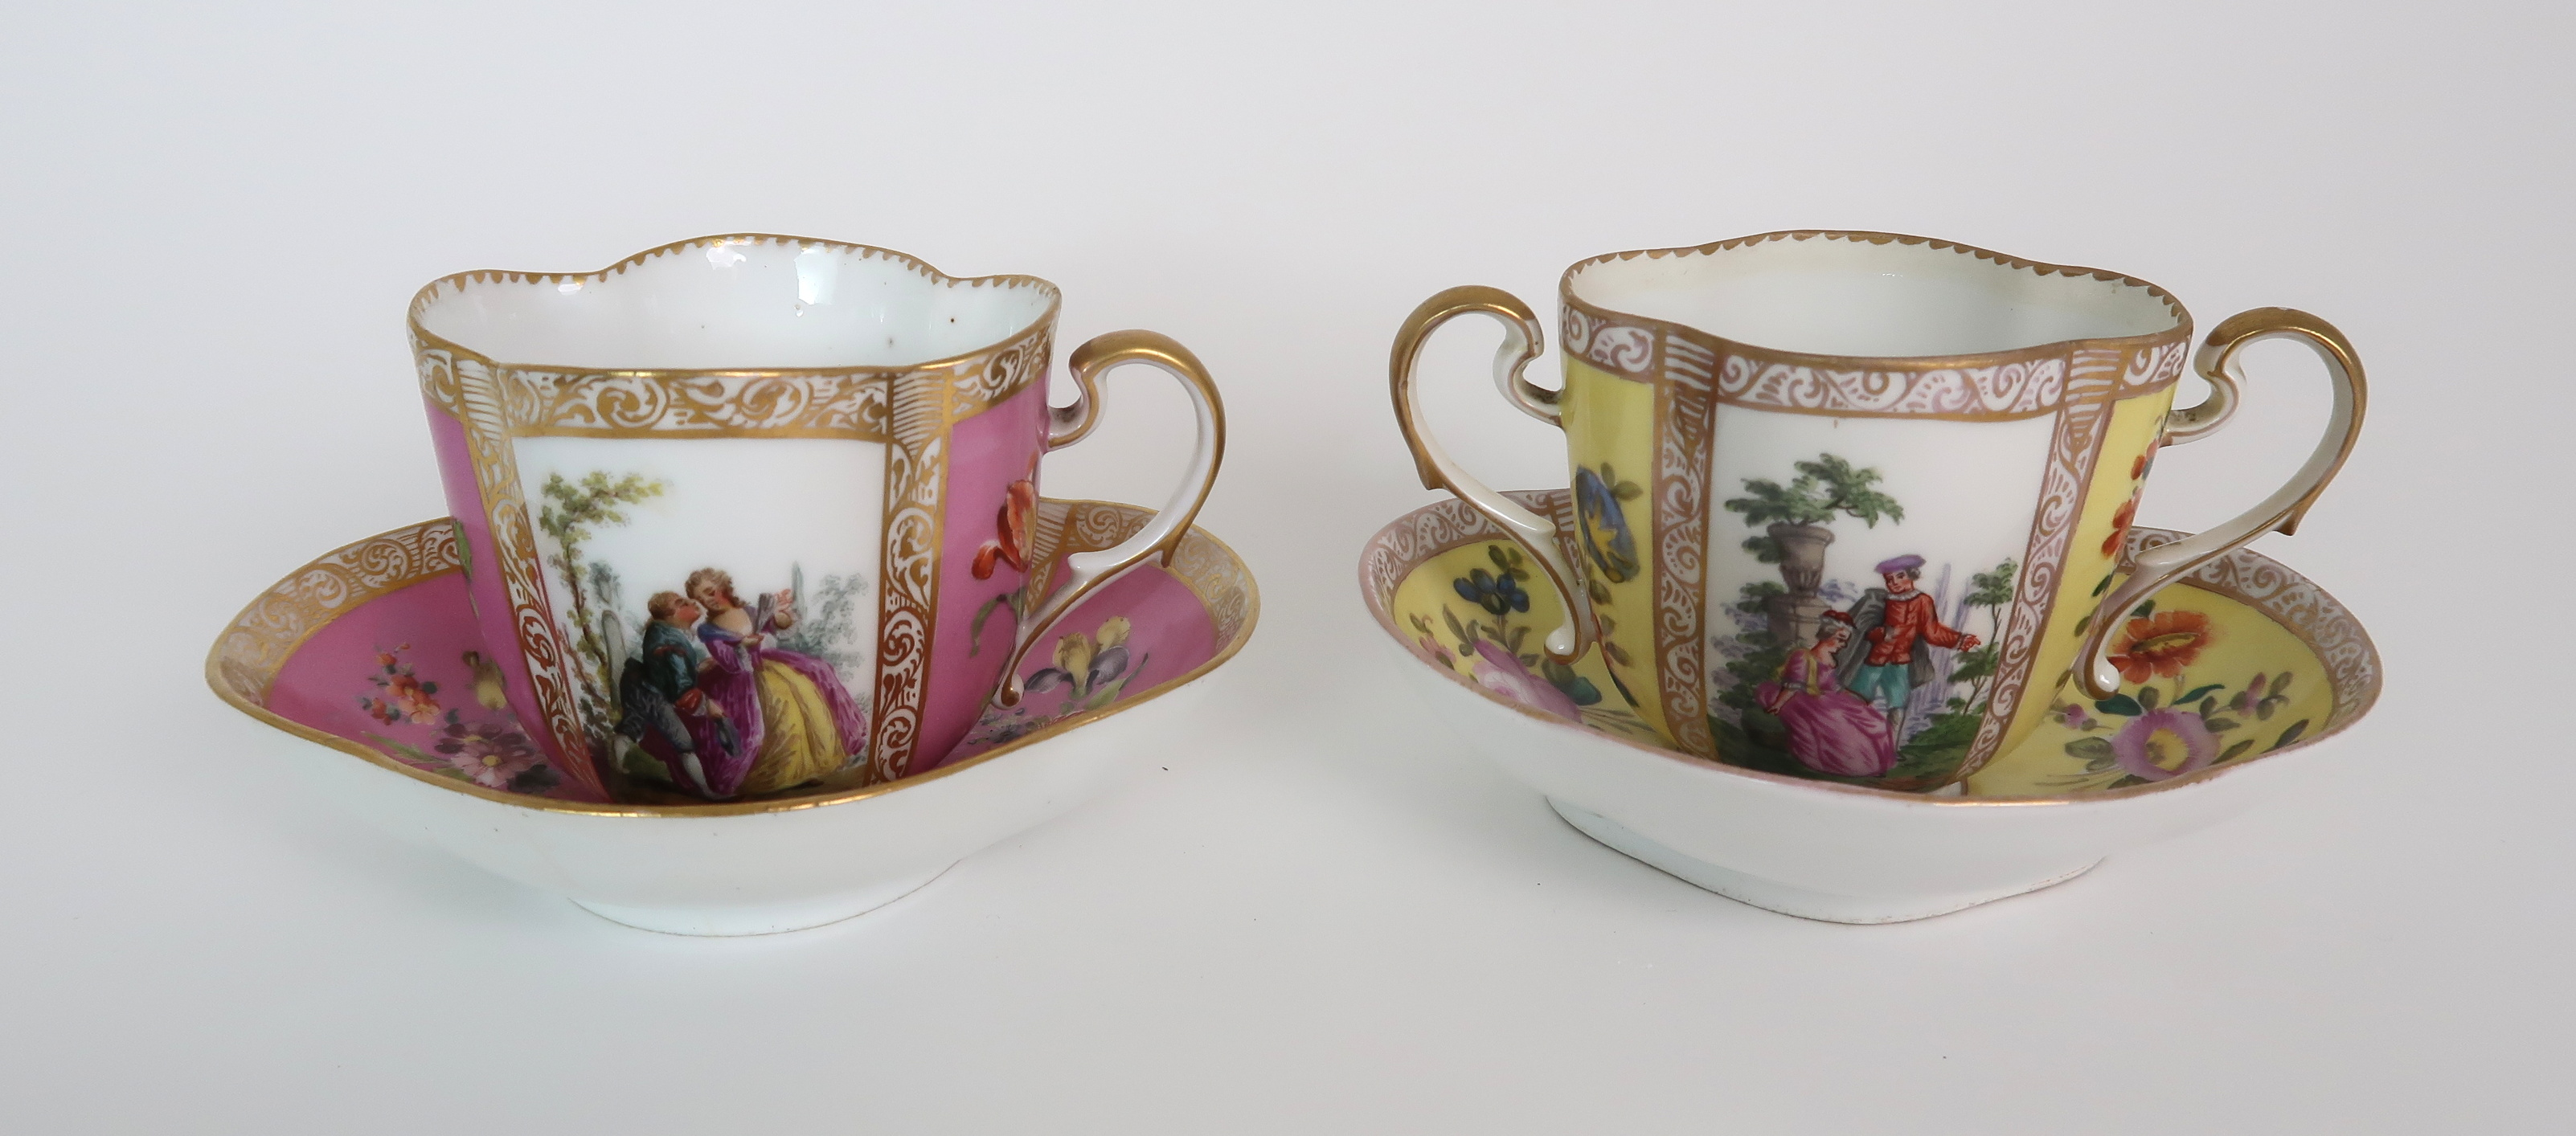 THREE CAPODIMONTE CUPS AND SAUCERS decorated with bacchanalian scenes, a pair of Sevres pots - Image 7 of 16